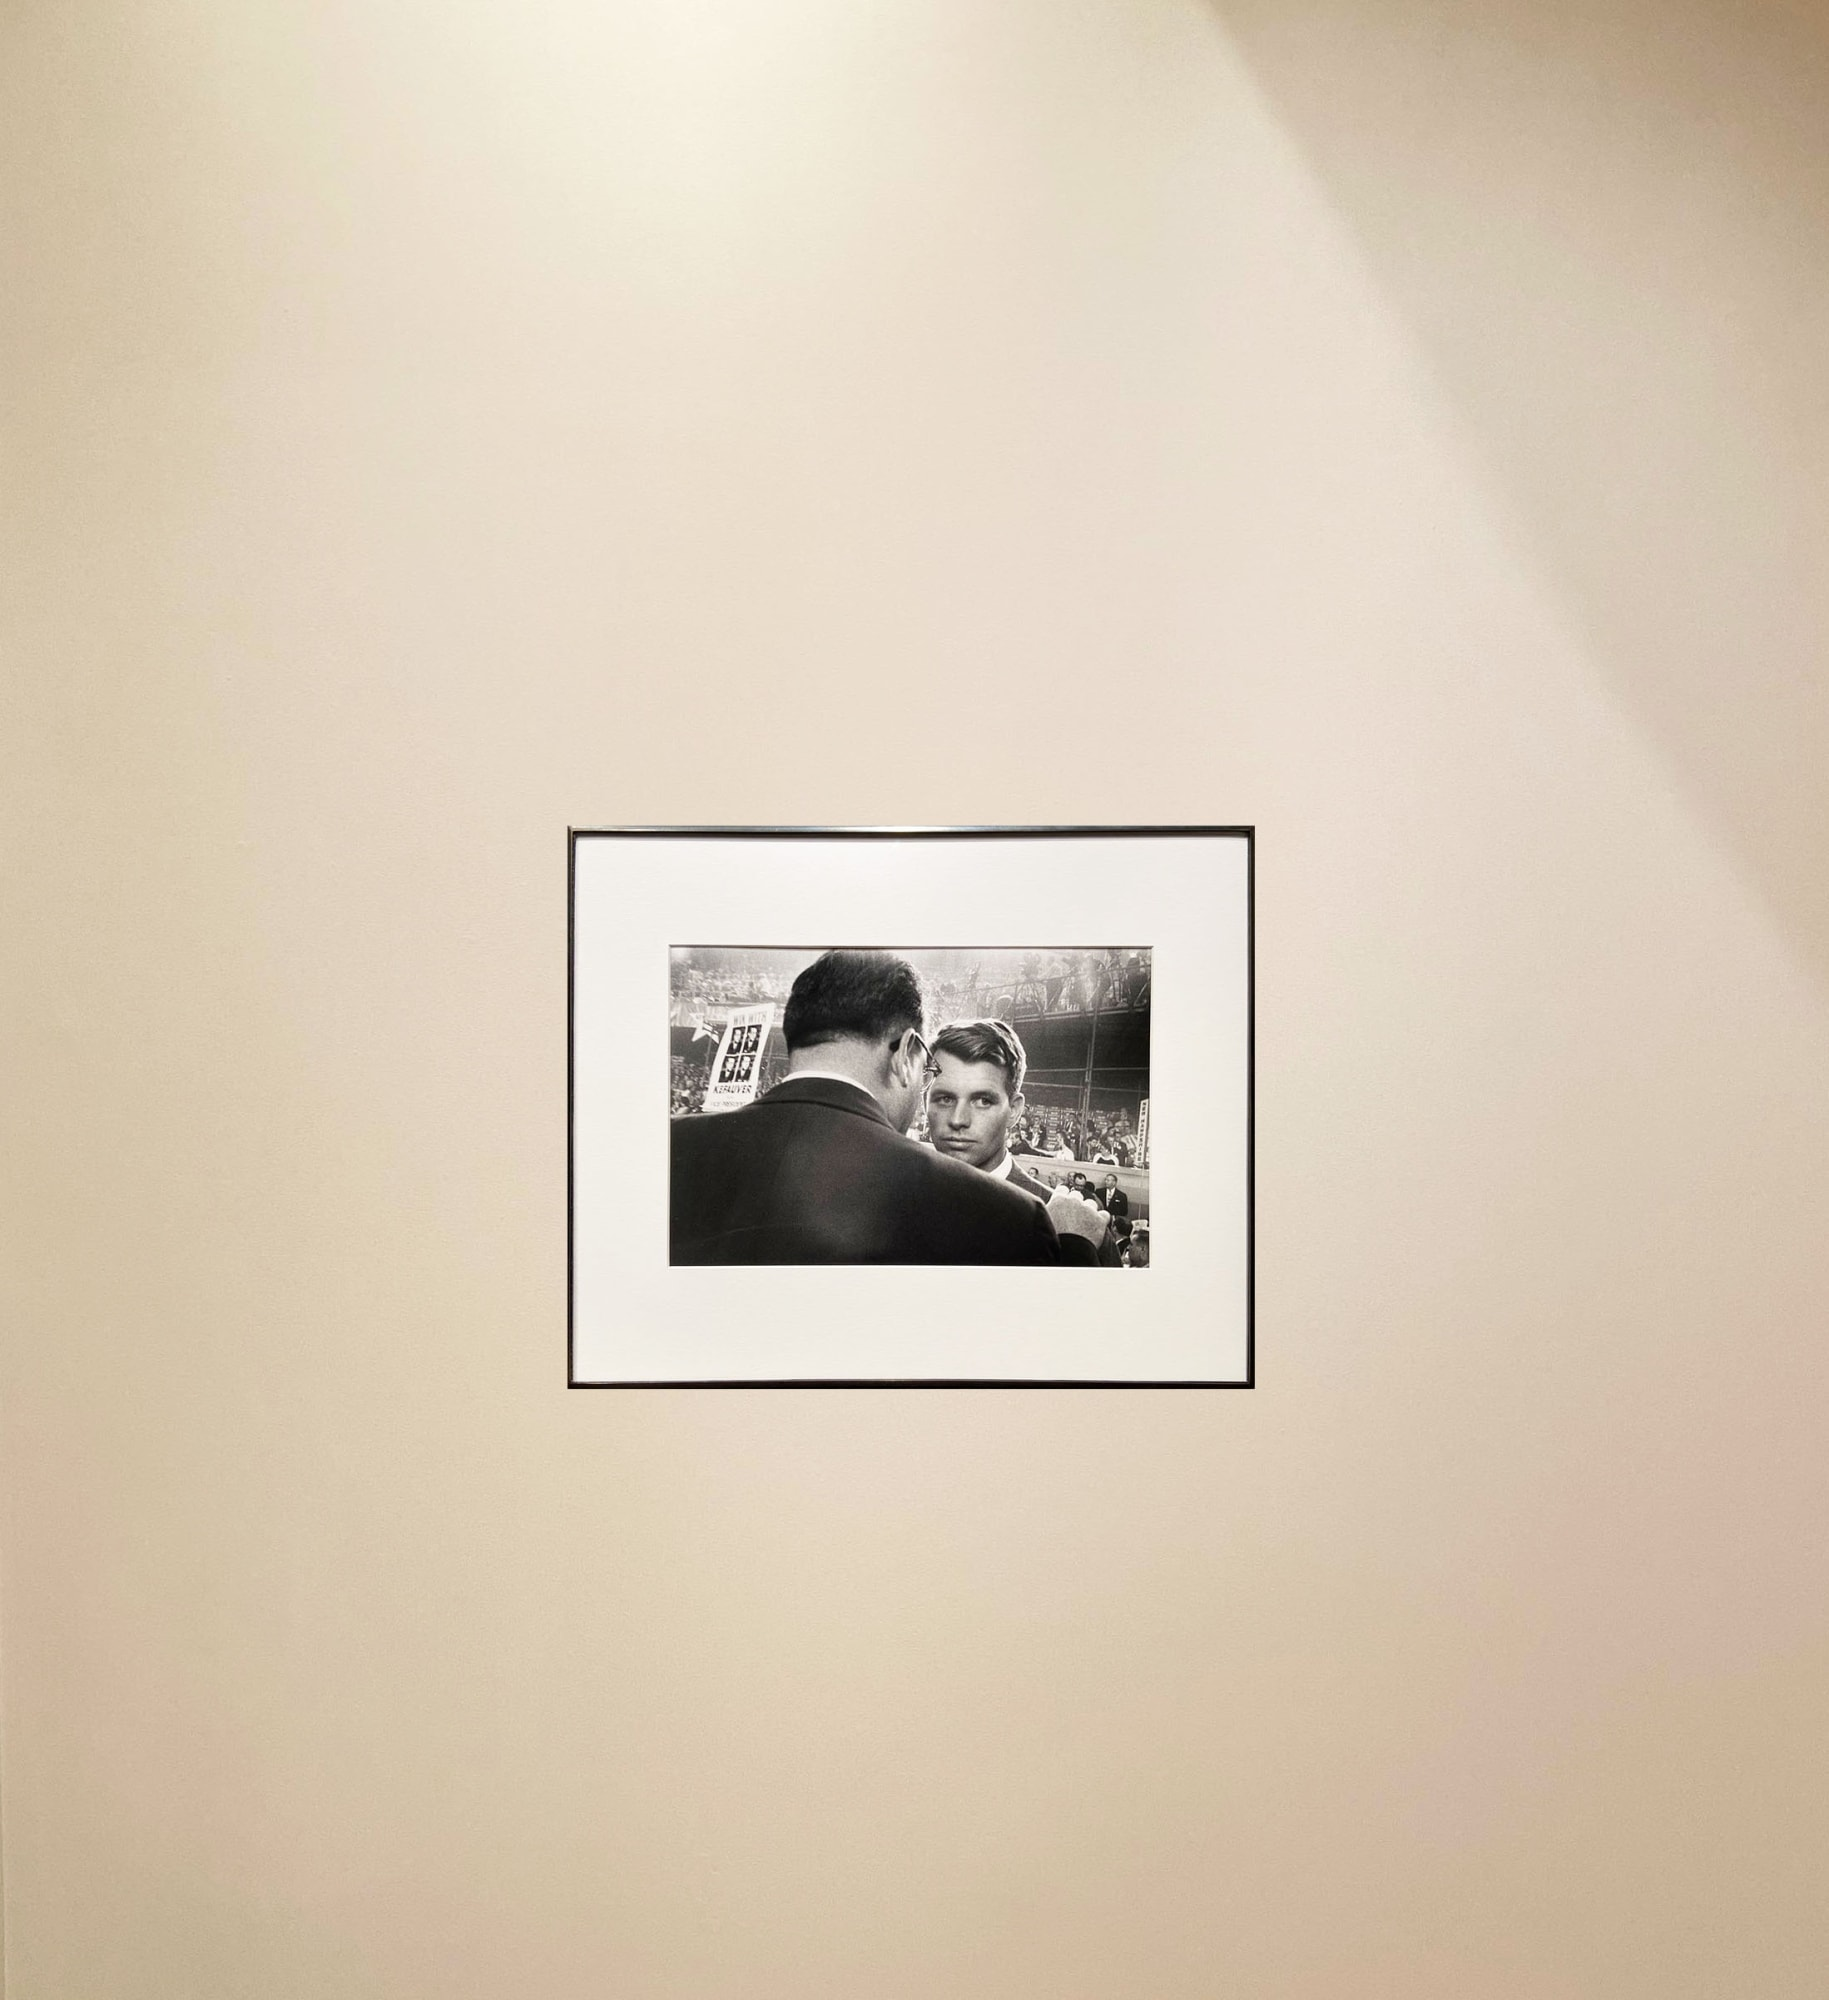 Robert Frank photograph of Robert Kennedy at a Chicago Convention, framed and hanging on a gray wall